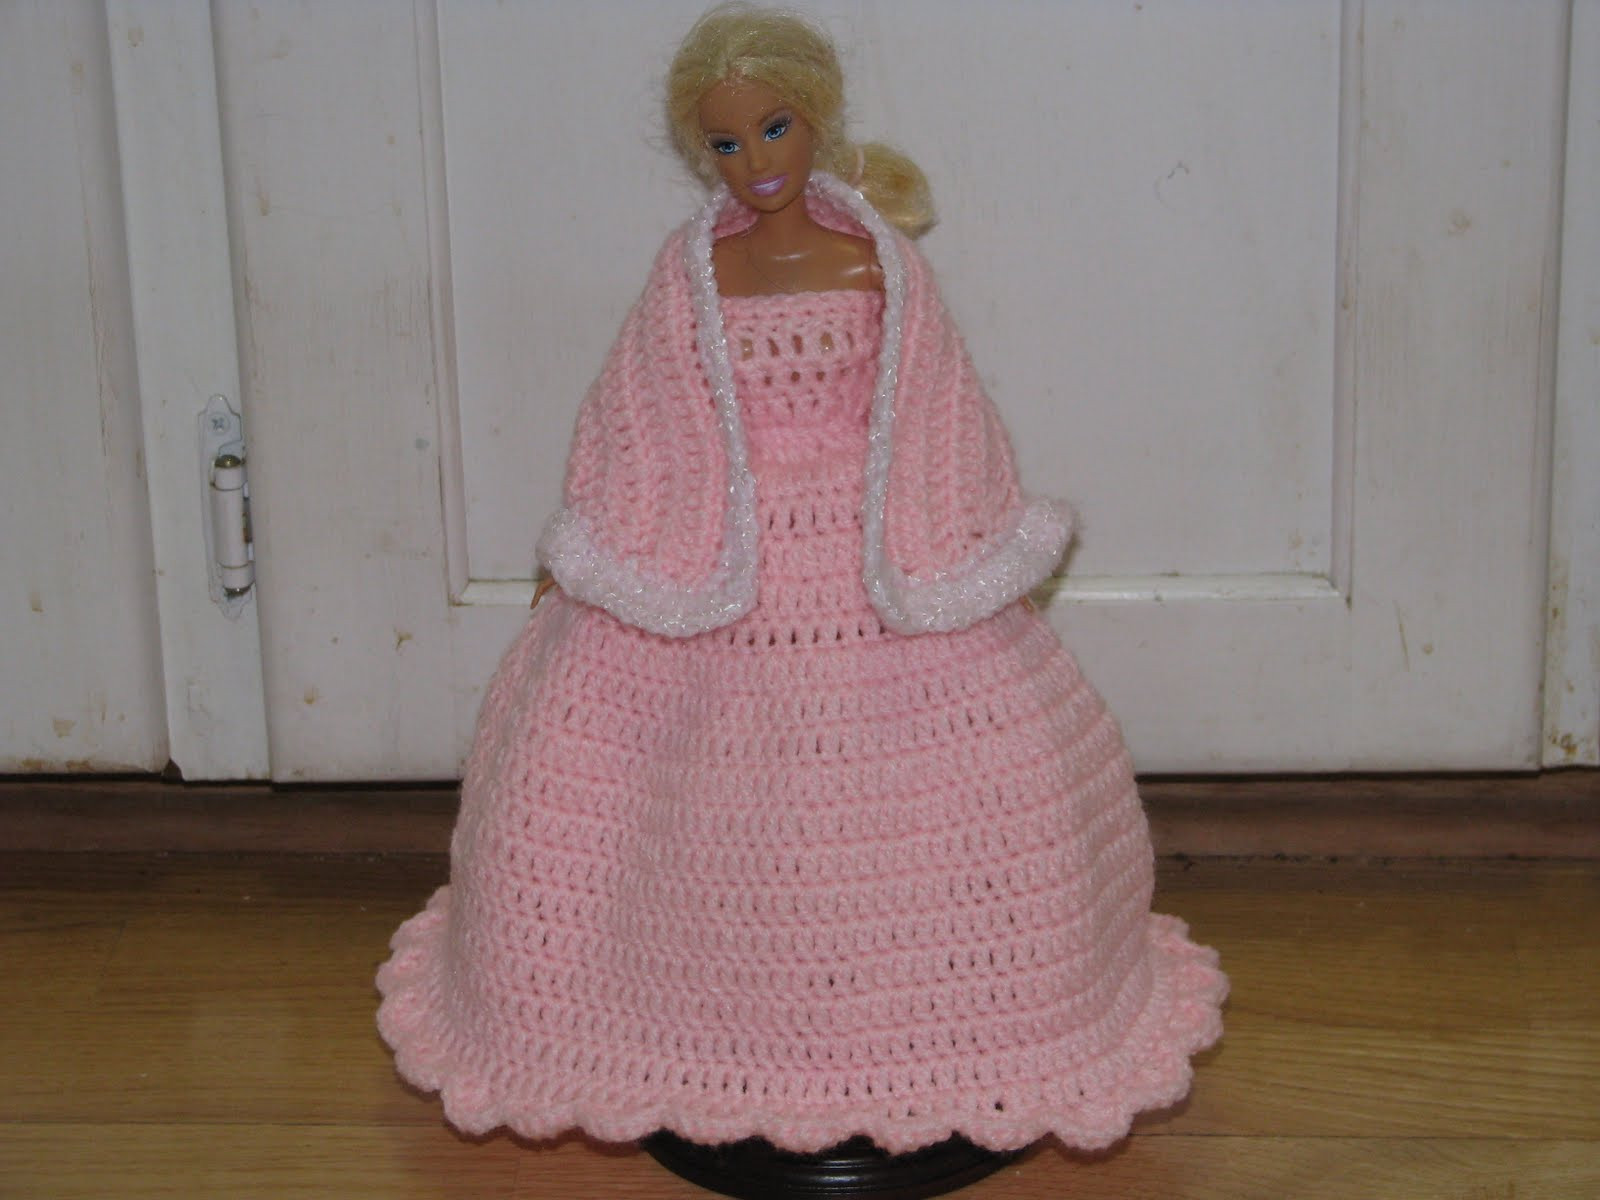 Free Barbie Crochet Patterns Fresh Craft attic Resources Barbie Crochet and Sewing Free Patterns Of Awesome 43 Pics Free Barbie Crochet Patterns